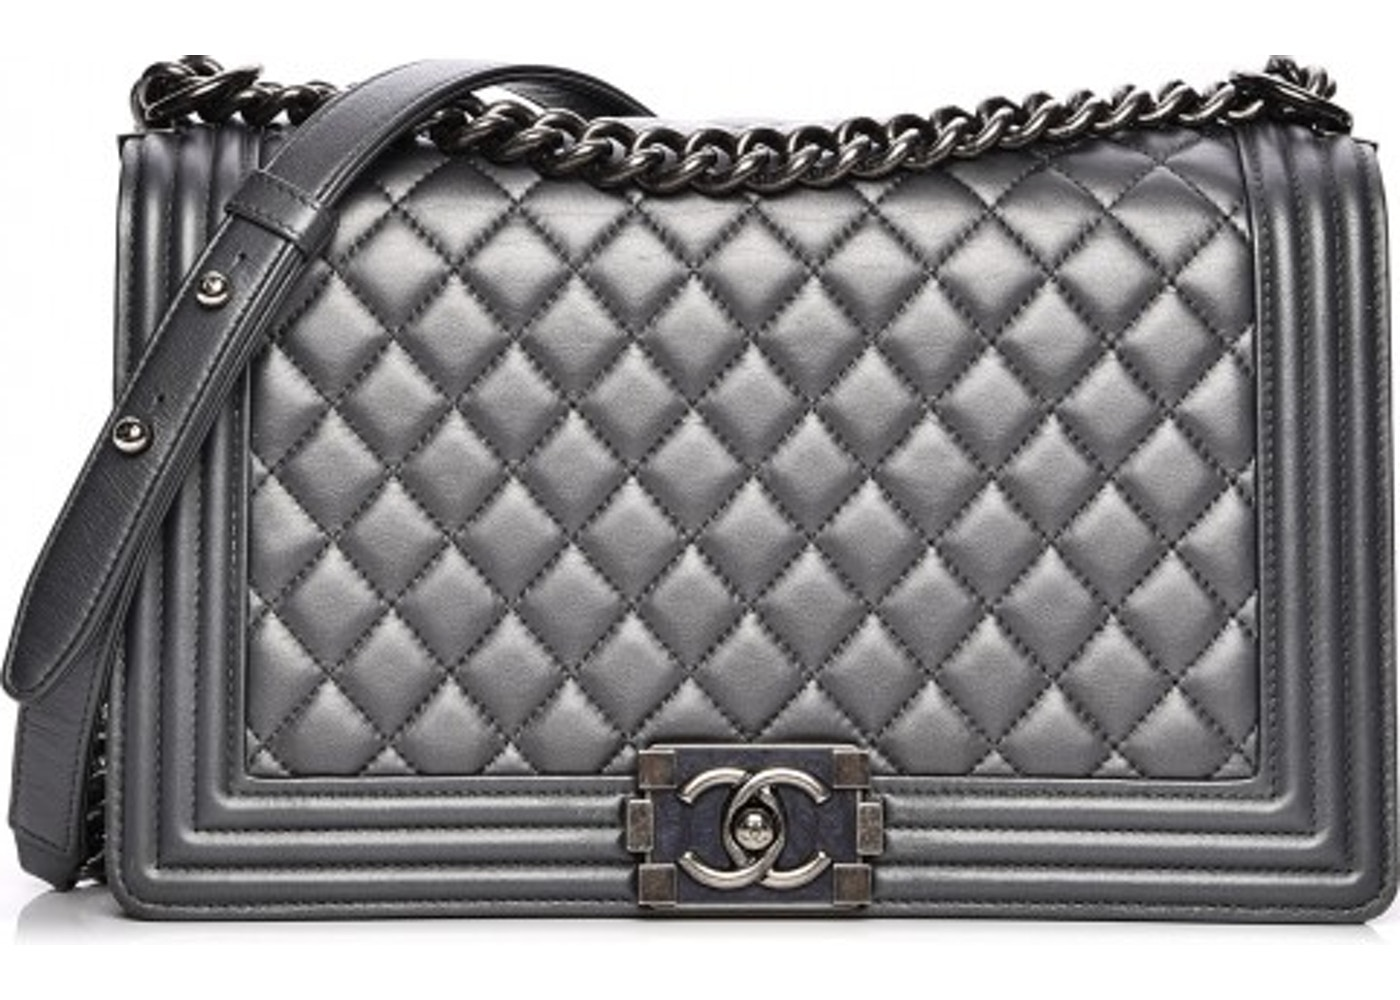 859601bdceed Chanel Boy Flap Quilted Metallic New Medium Dark Silver. Quilted Metallic  New Medium Dark Silver